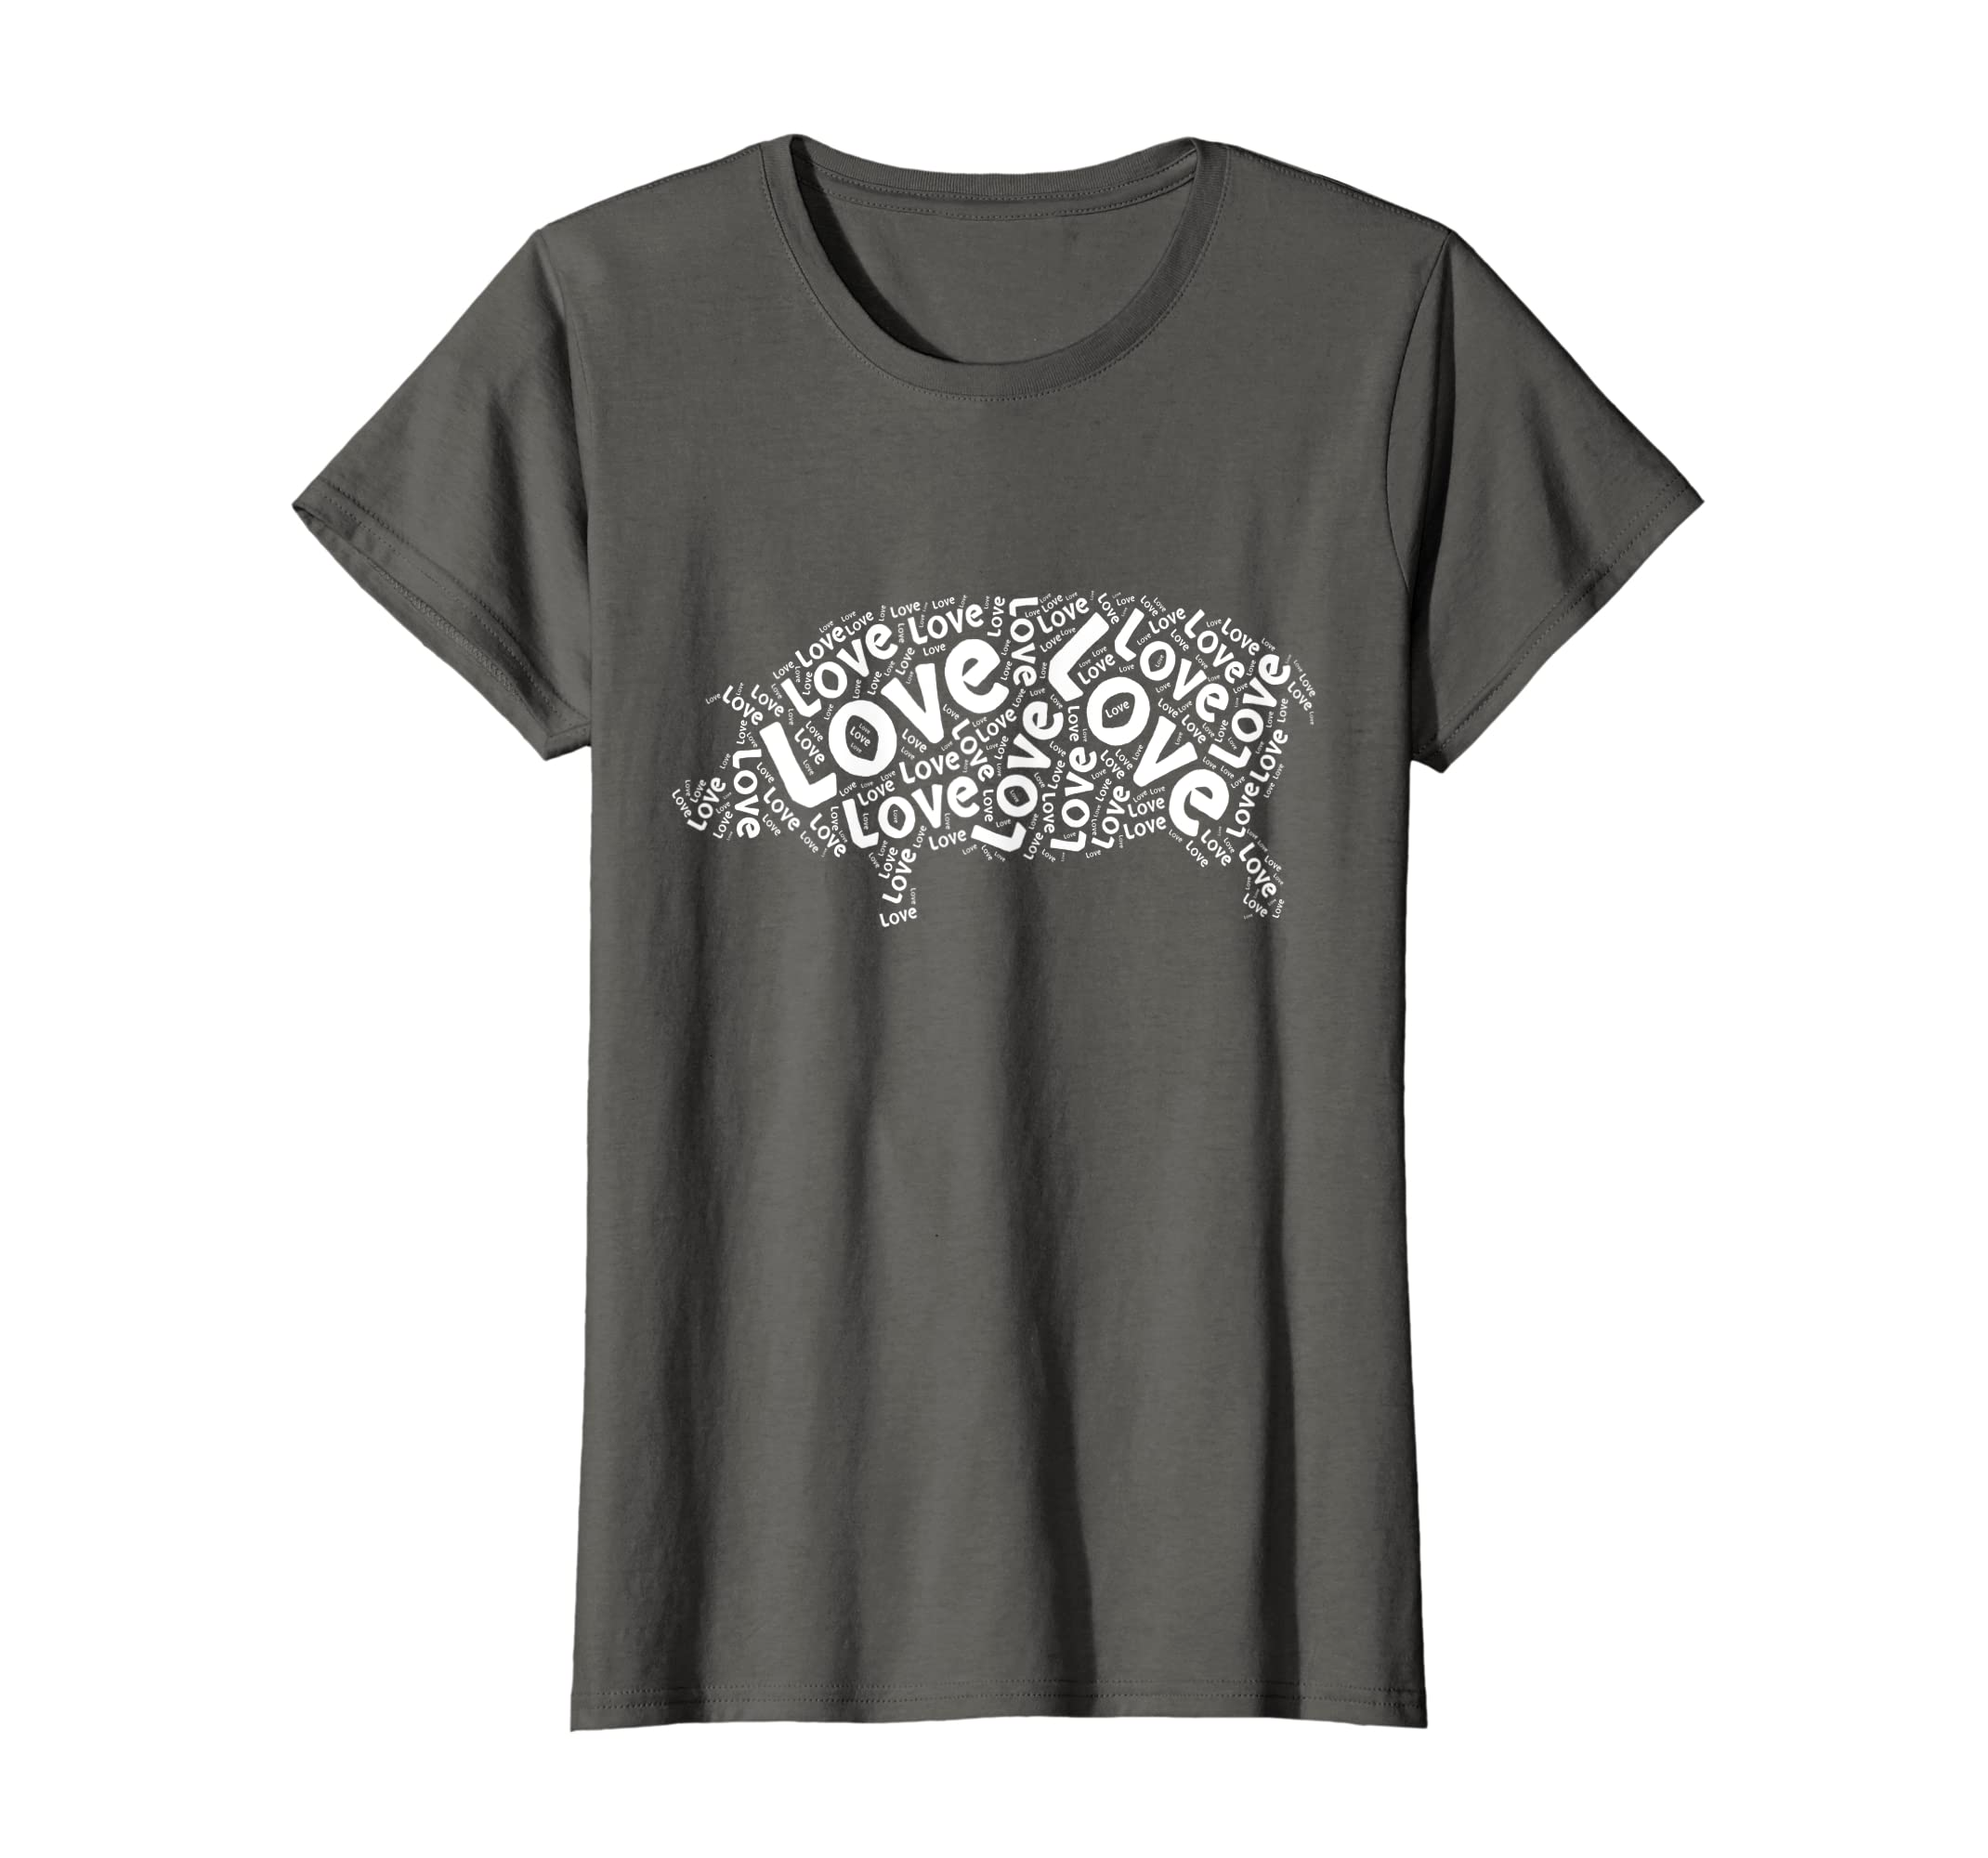 dba1f2b8 Amazon.com: Love Pig Shirt, I Love Pigs T-Shirt Word Cloud Graphic Tee:  Clothing